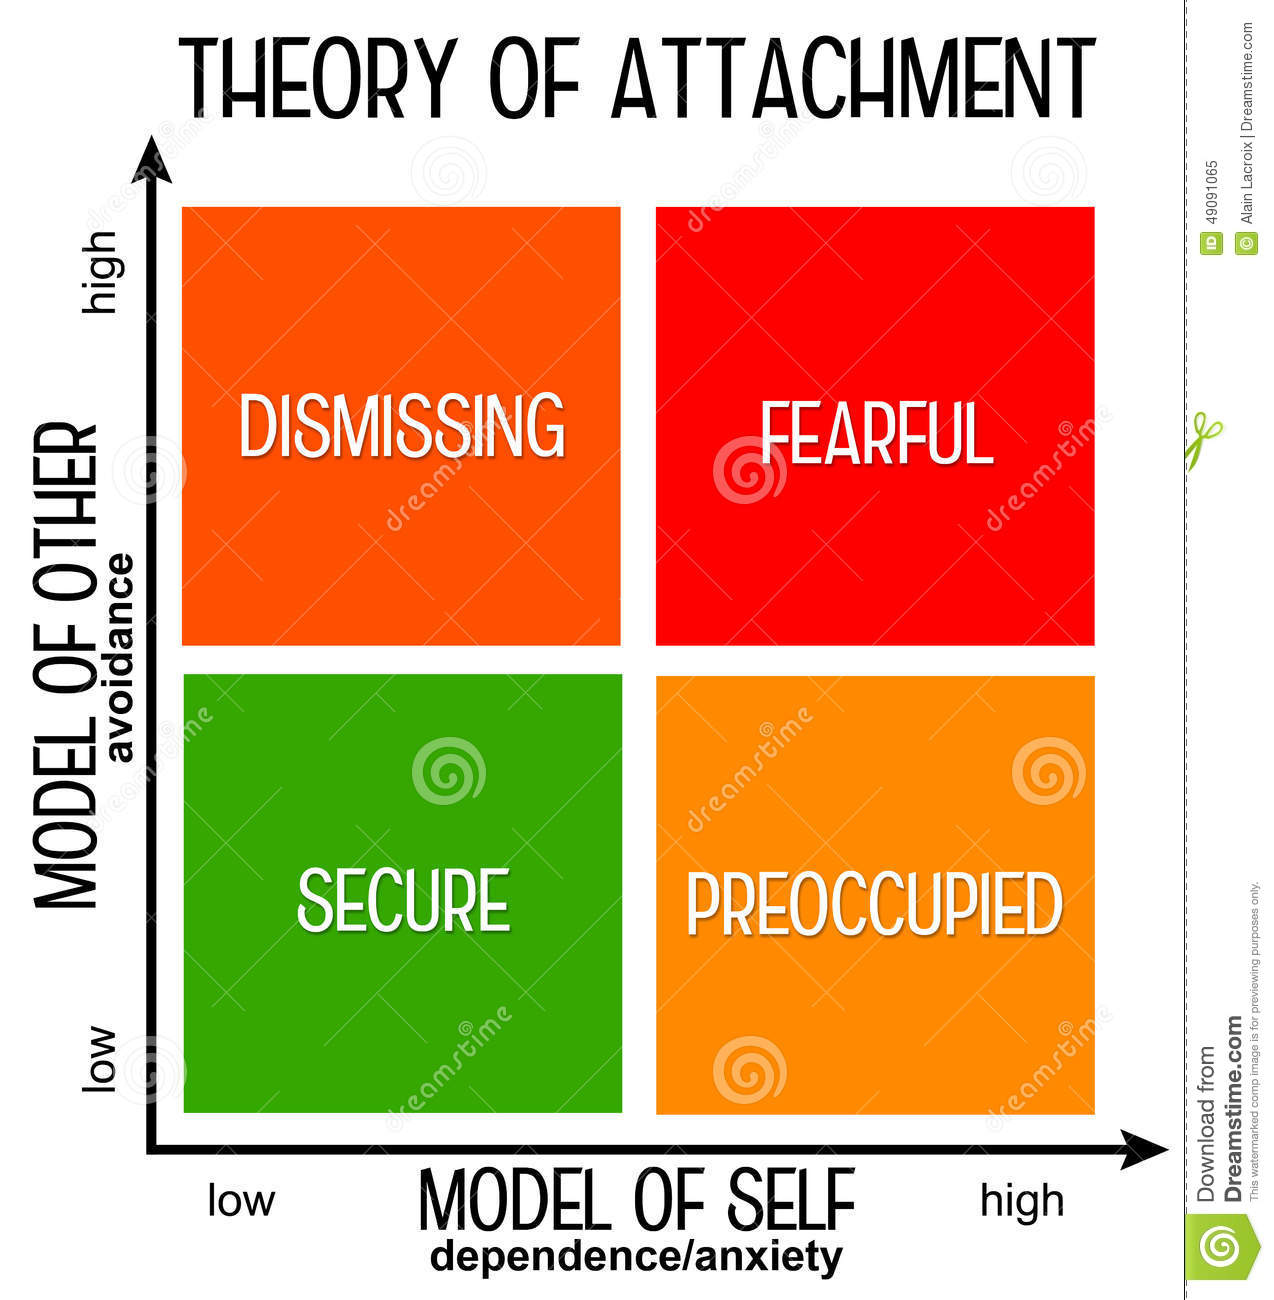 attachment theories What is your attachment style based on the attachment theory, the relationship attachment style test checks for behaviors that indicate codependency, avoidant personality or healthy attachment style.